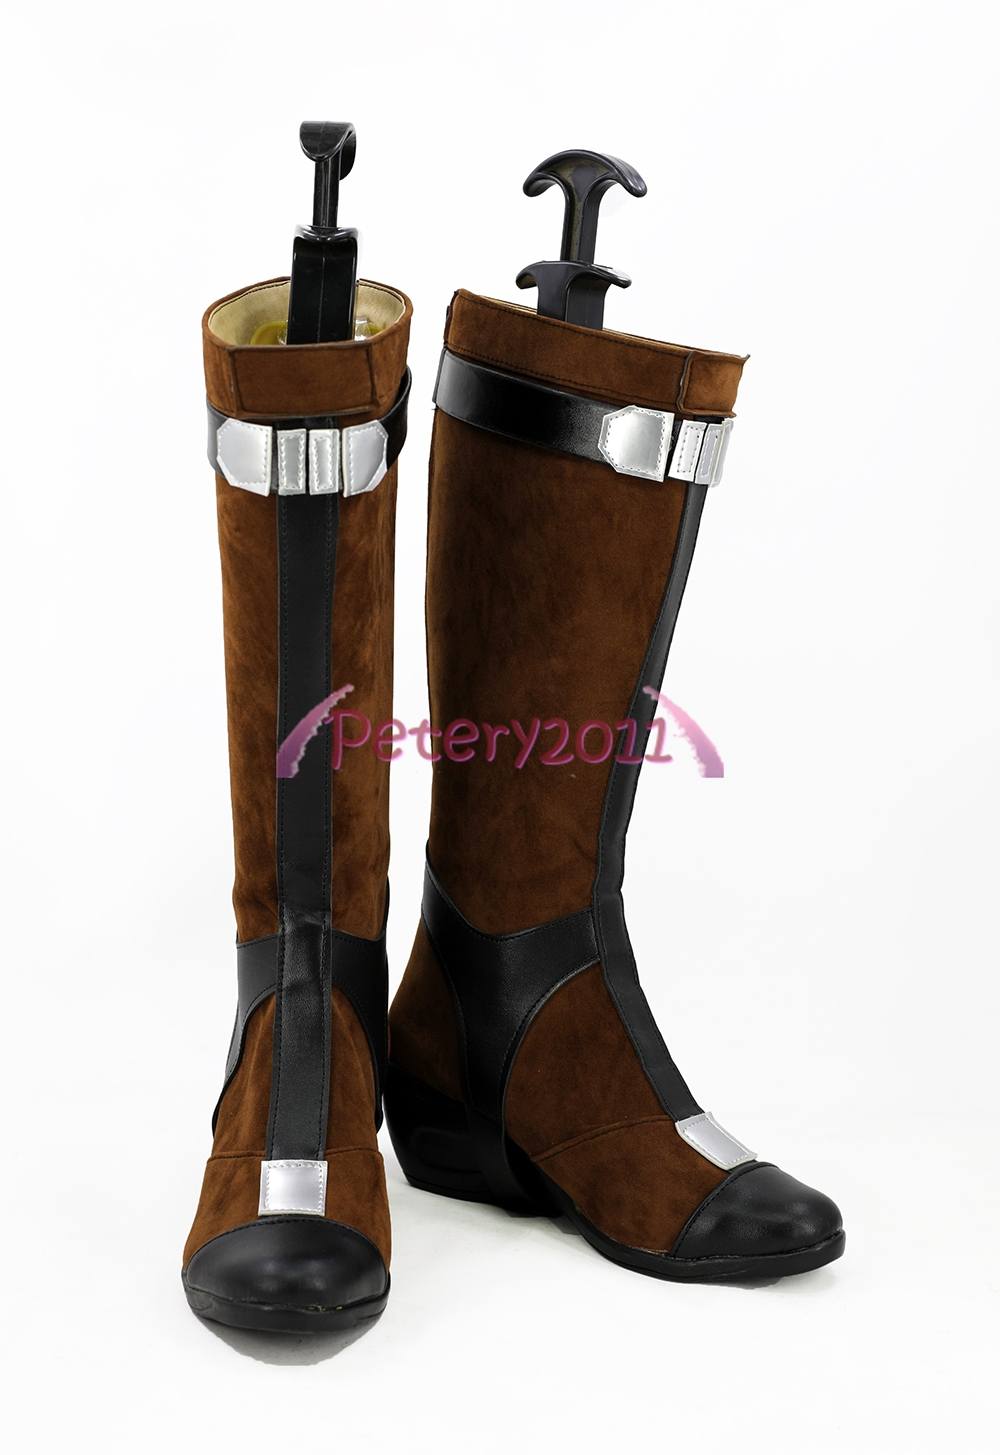 The Avengers Infinity War Captain America Cosplay Boot Shoes